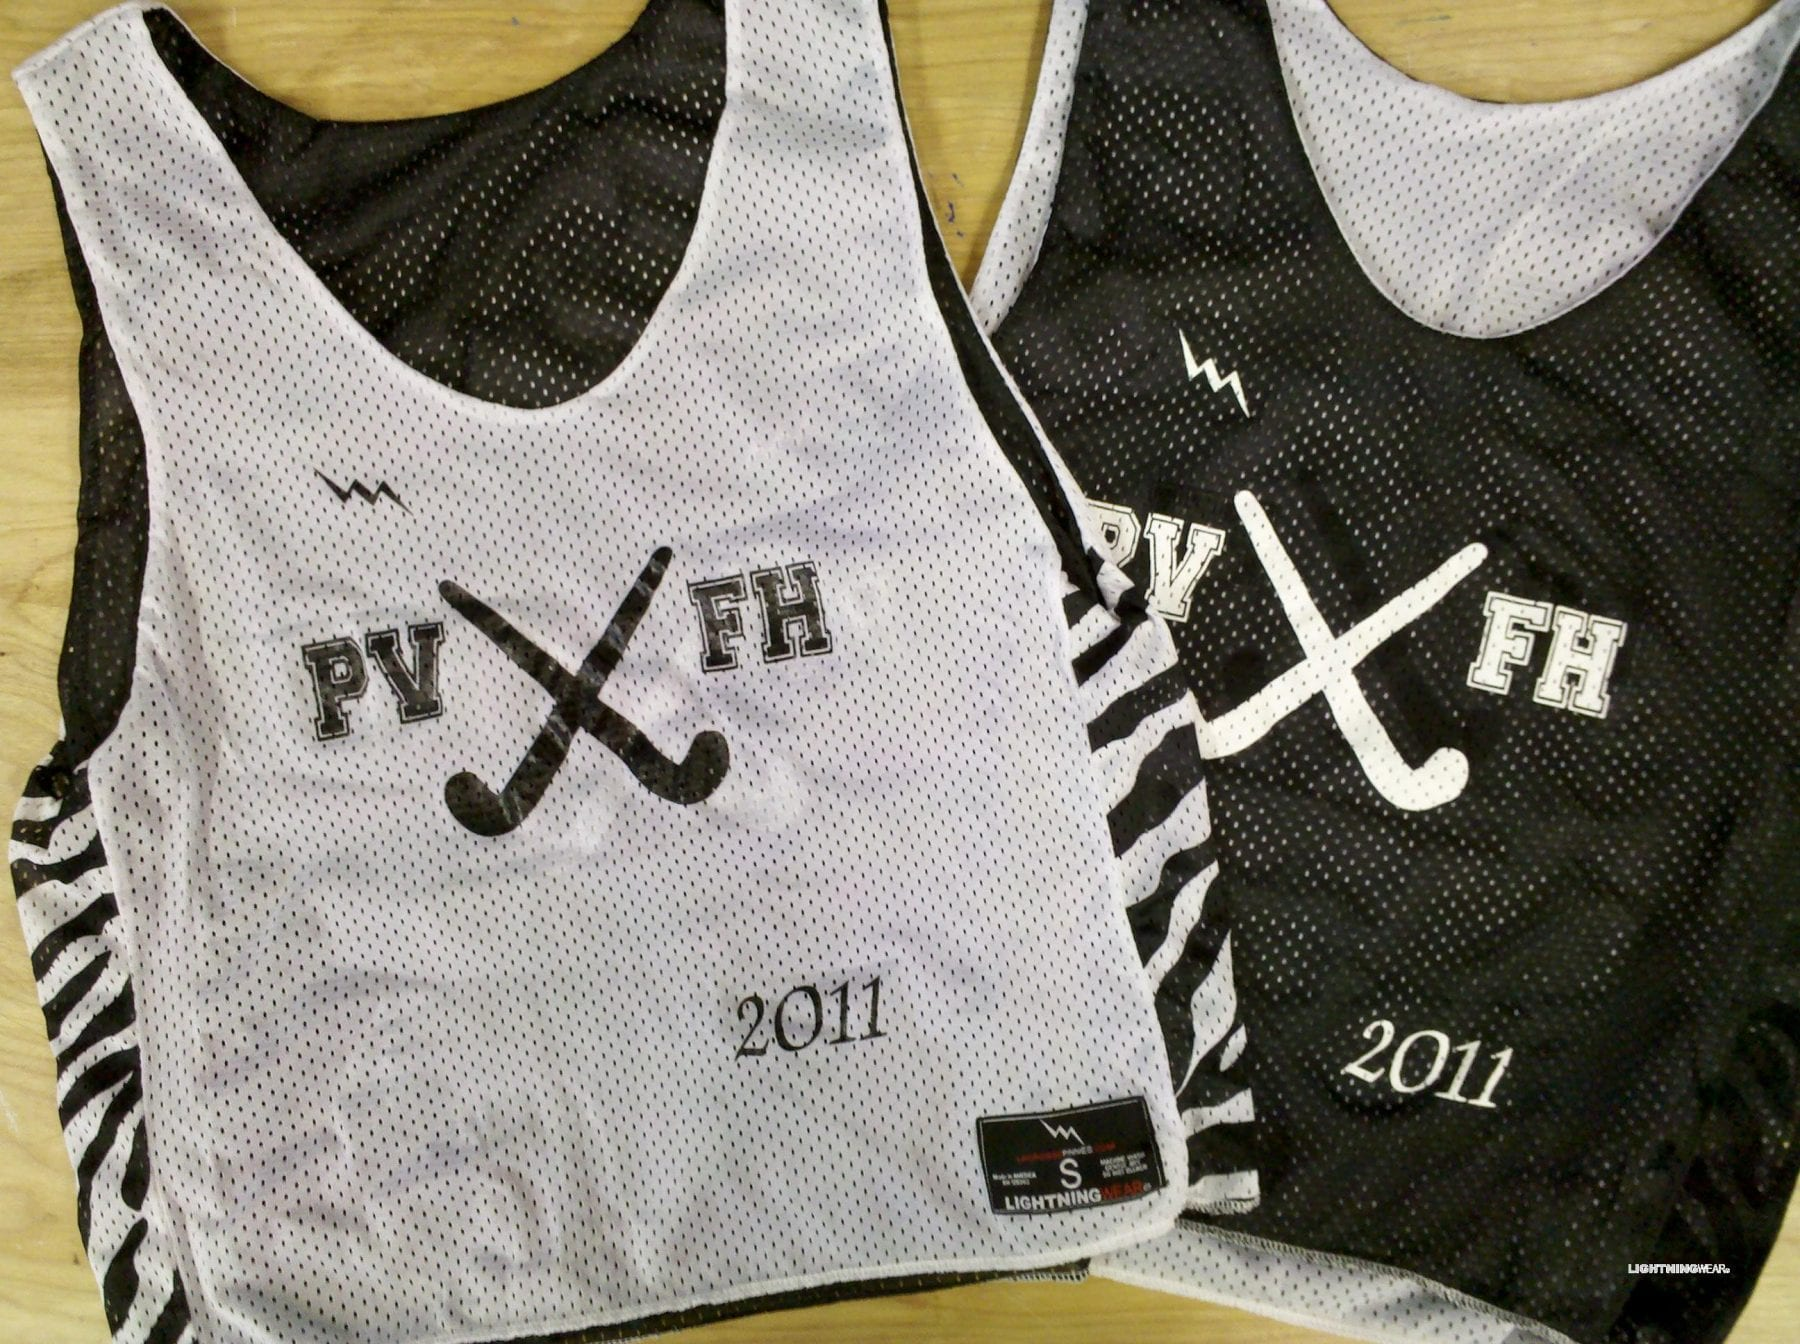 fvfh field hockey pinnies